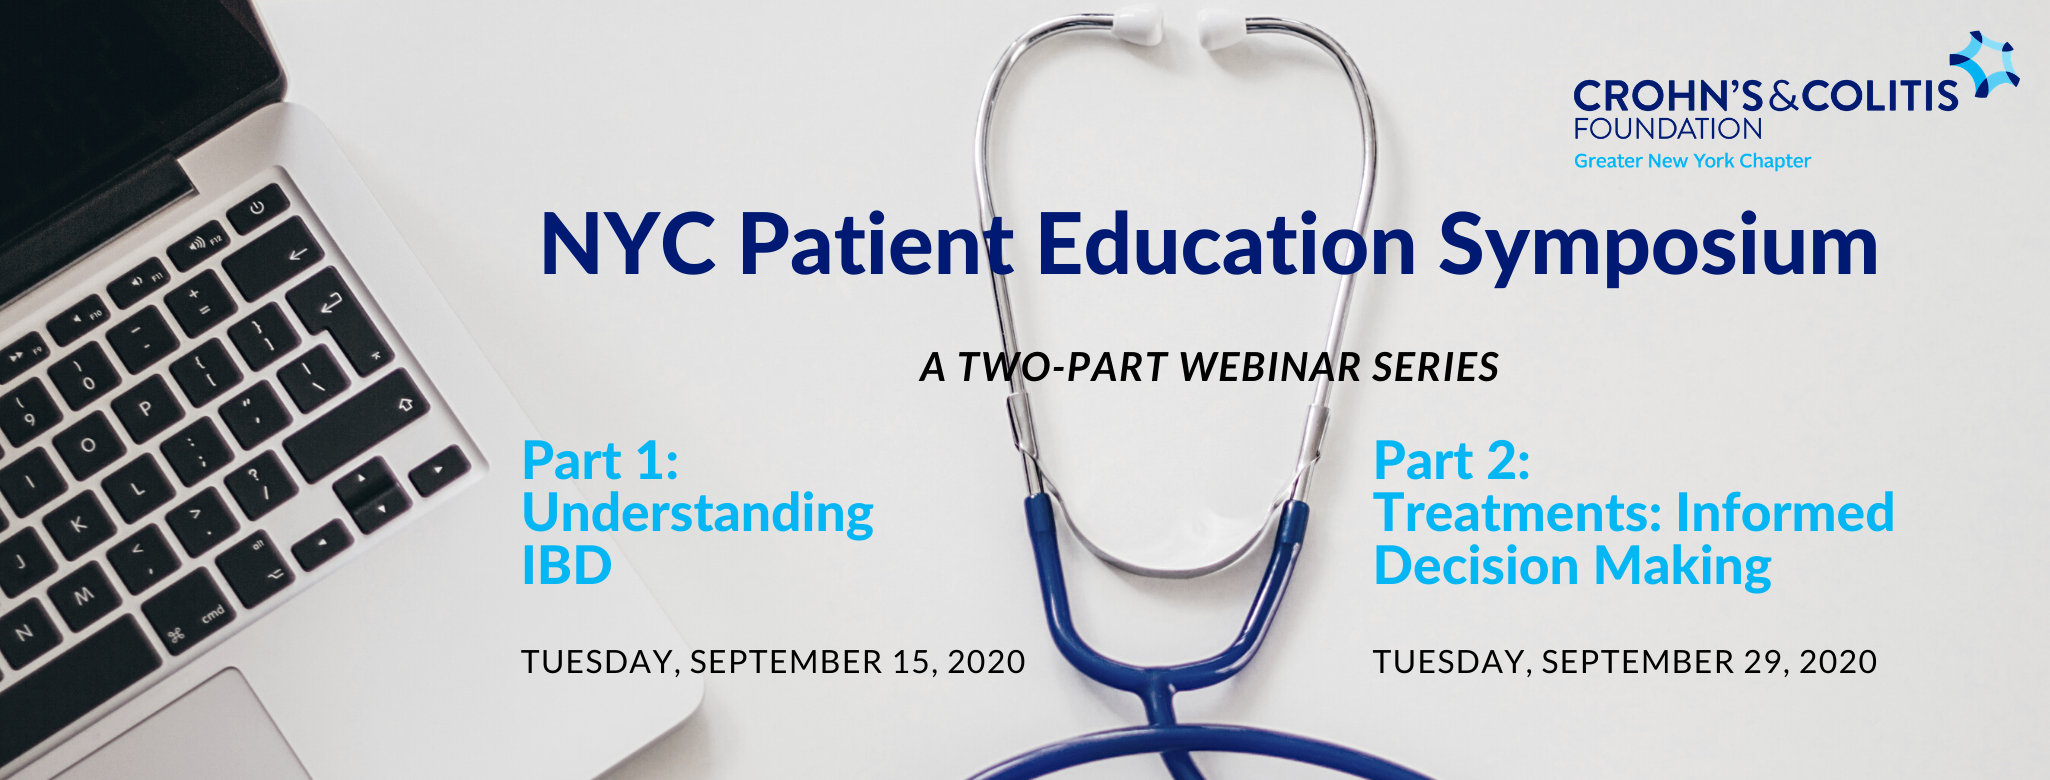 NYC Patient Education Symposium (1).png